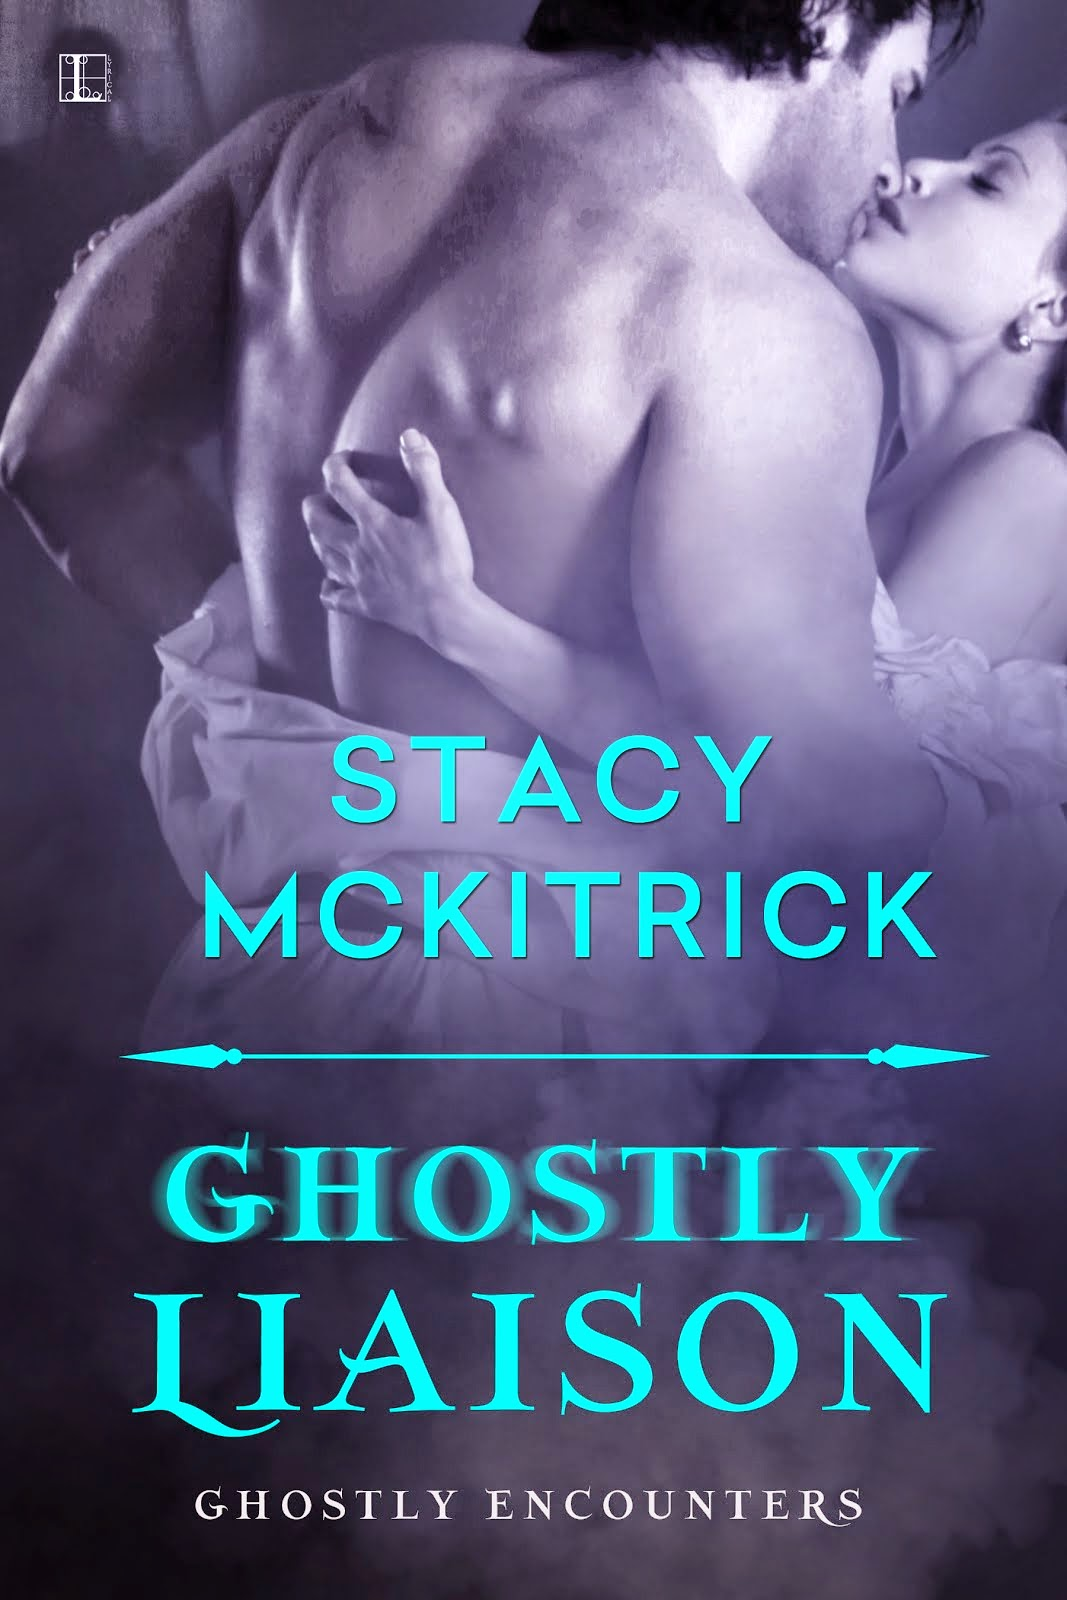 Book 1 of Ghostly Encounter Series